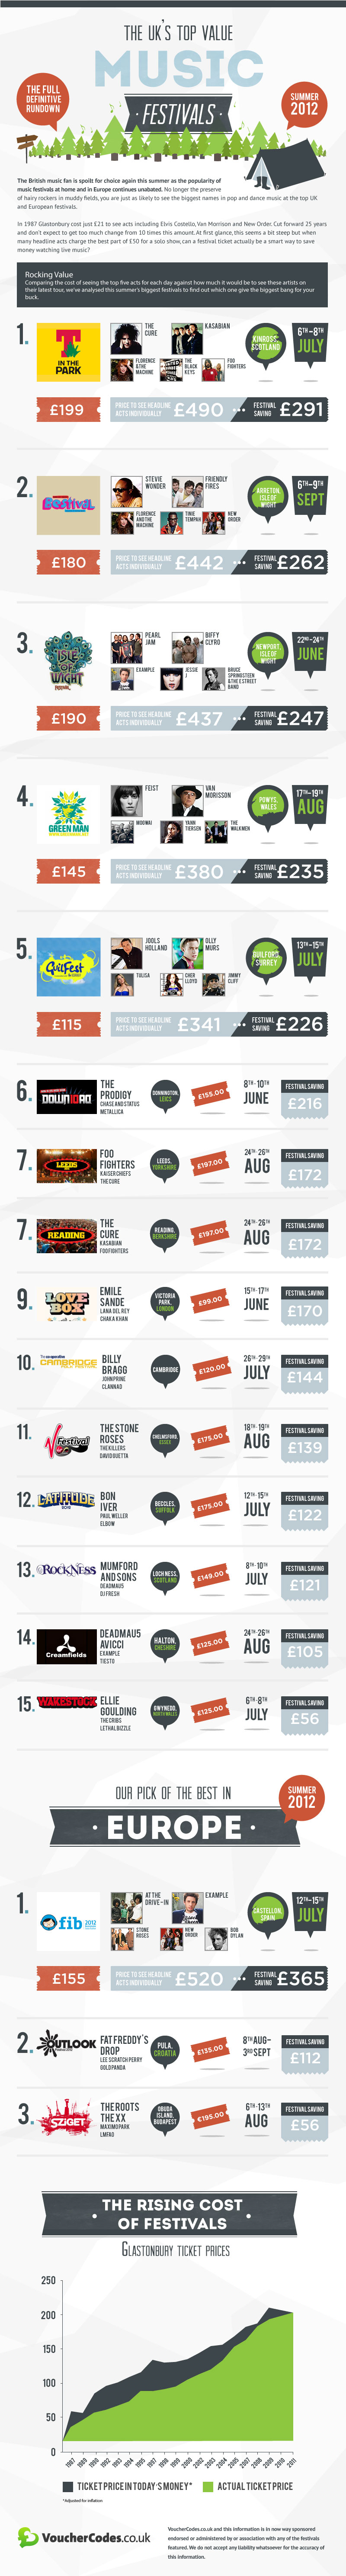 Music Festival 2012 Infographic